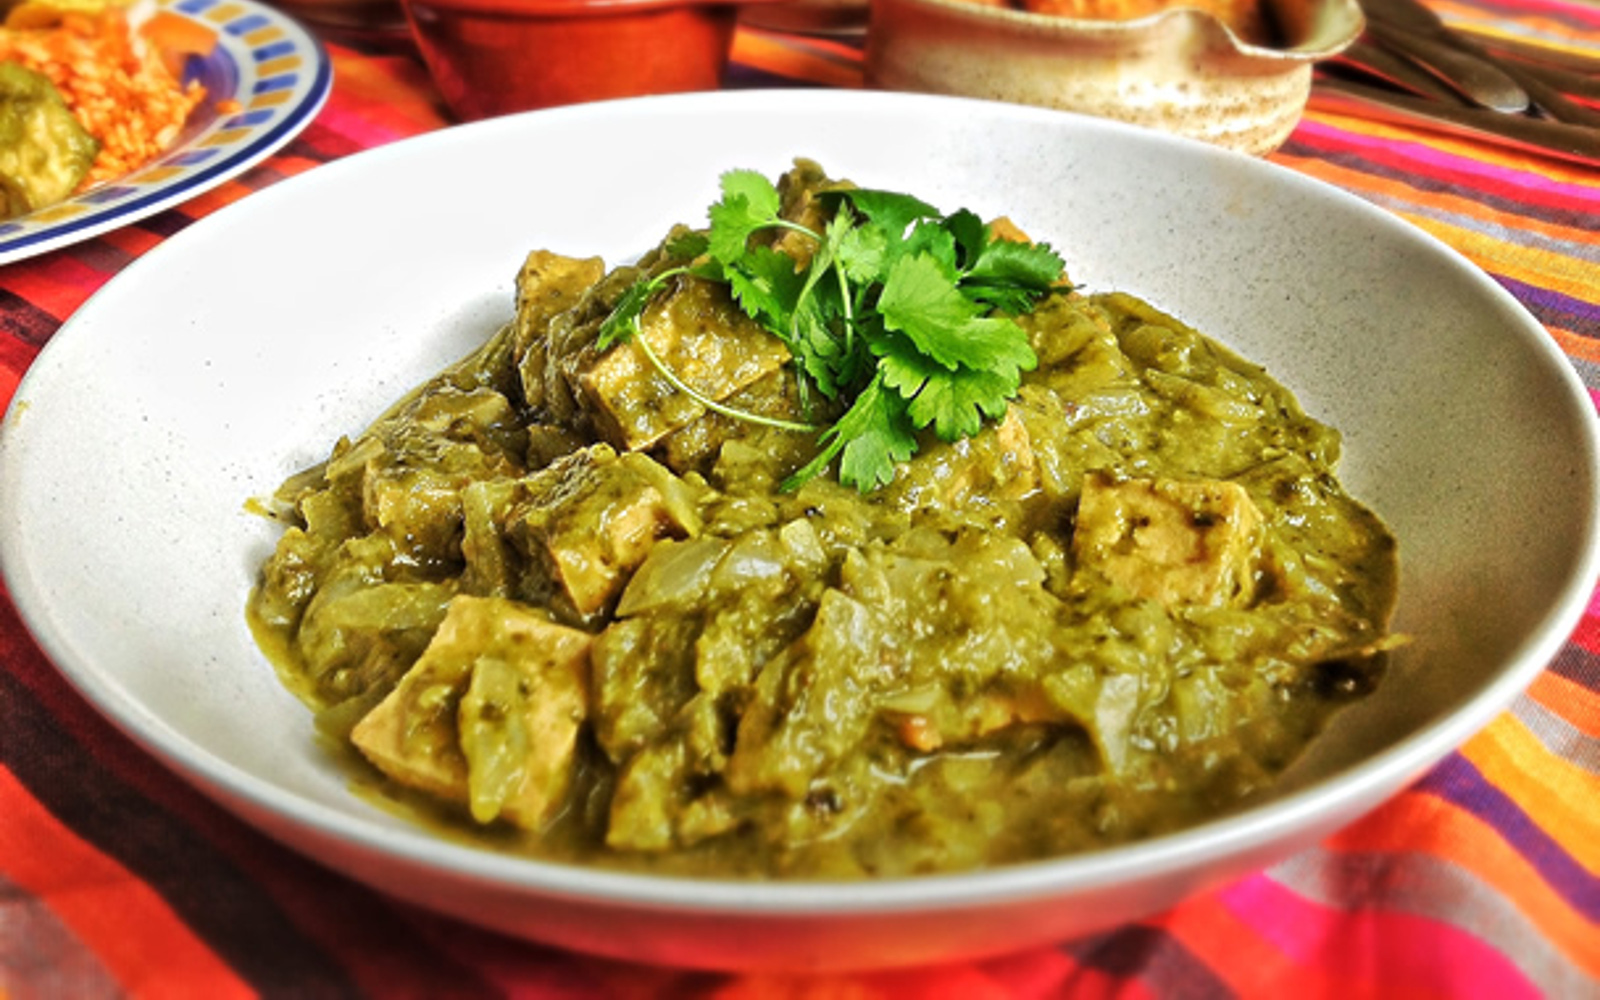 Vegan Mexican Green Chili With Tofu with herbs